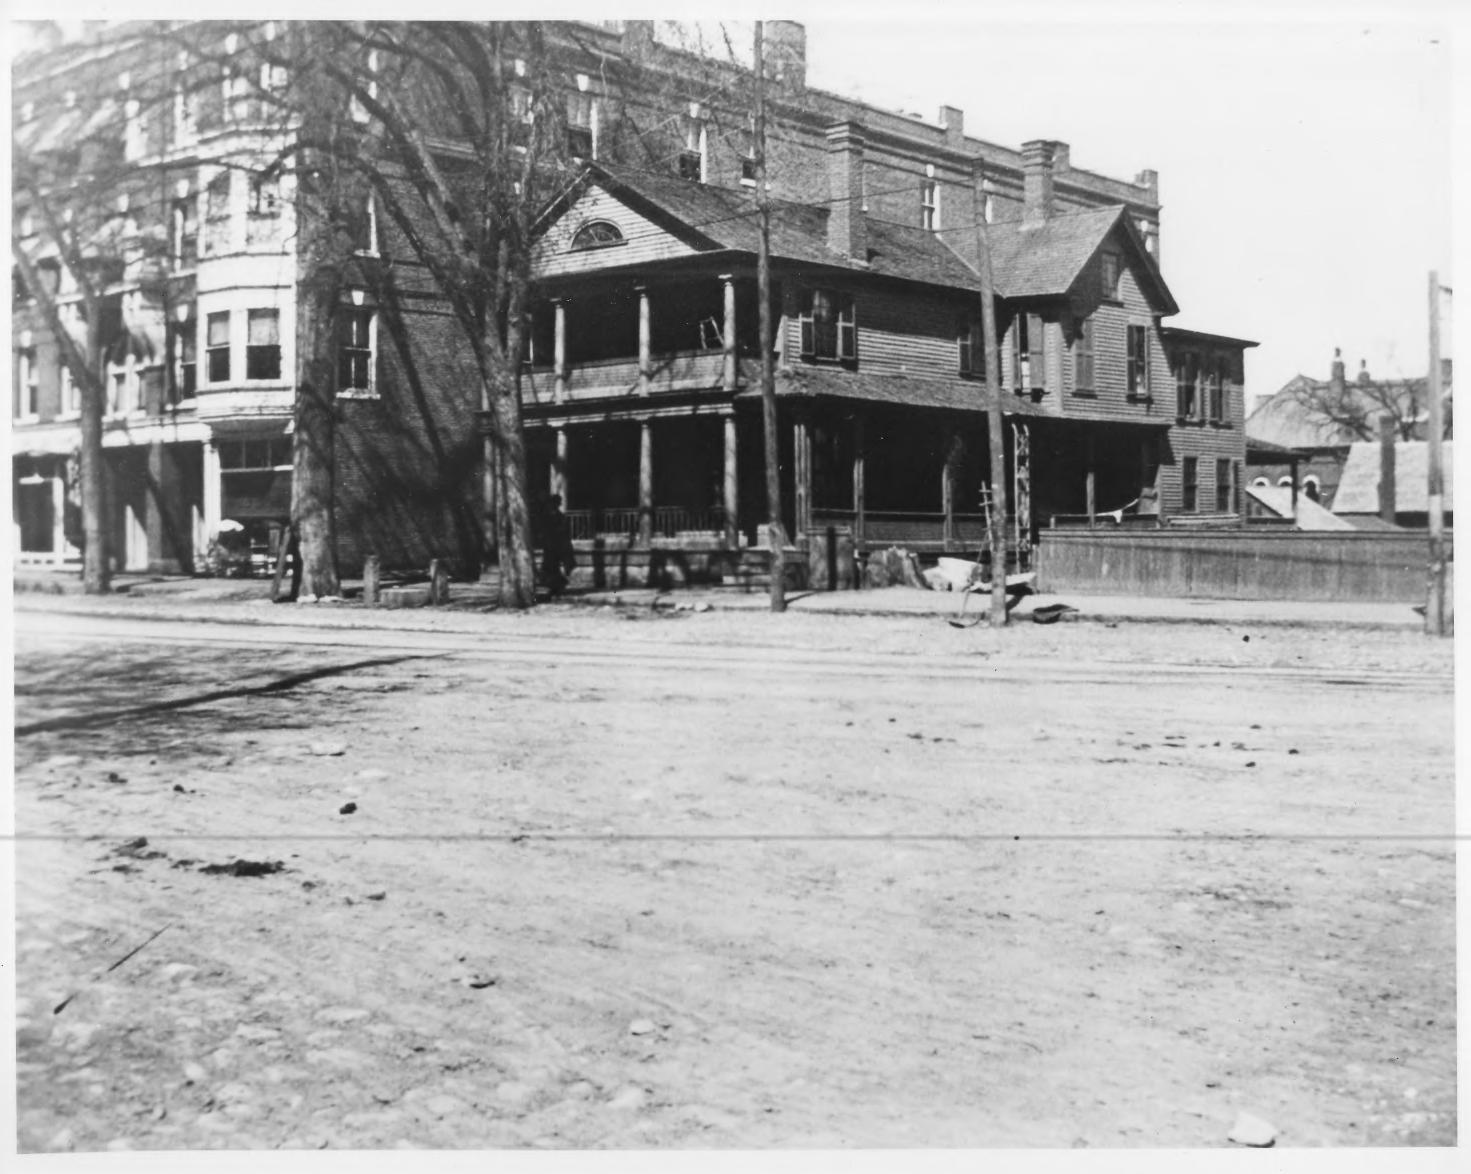 Endicott Hotel (Blanchard's Block) and nearby house, demonstrating how the Endicott arose as the first commercial building on that section of Main Street in 1894.